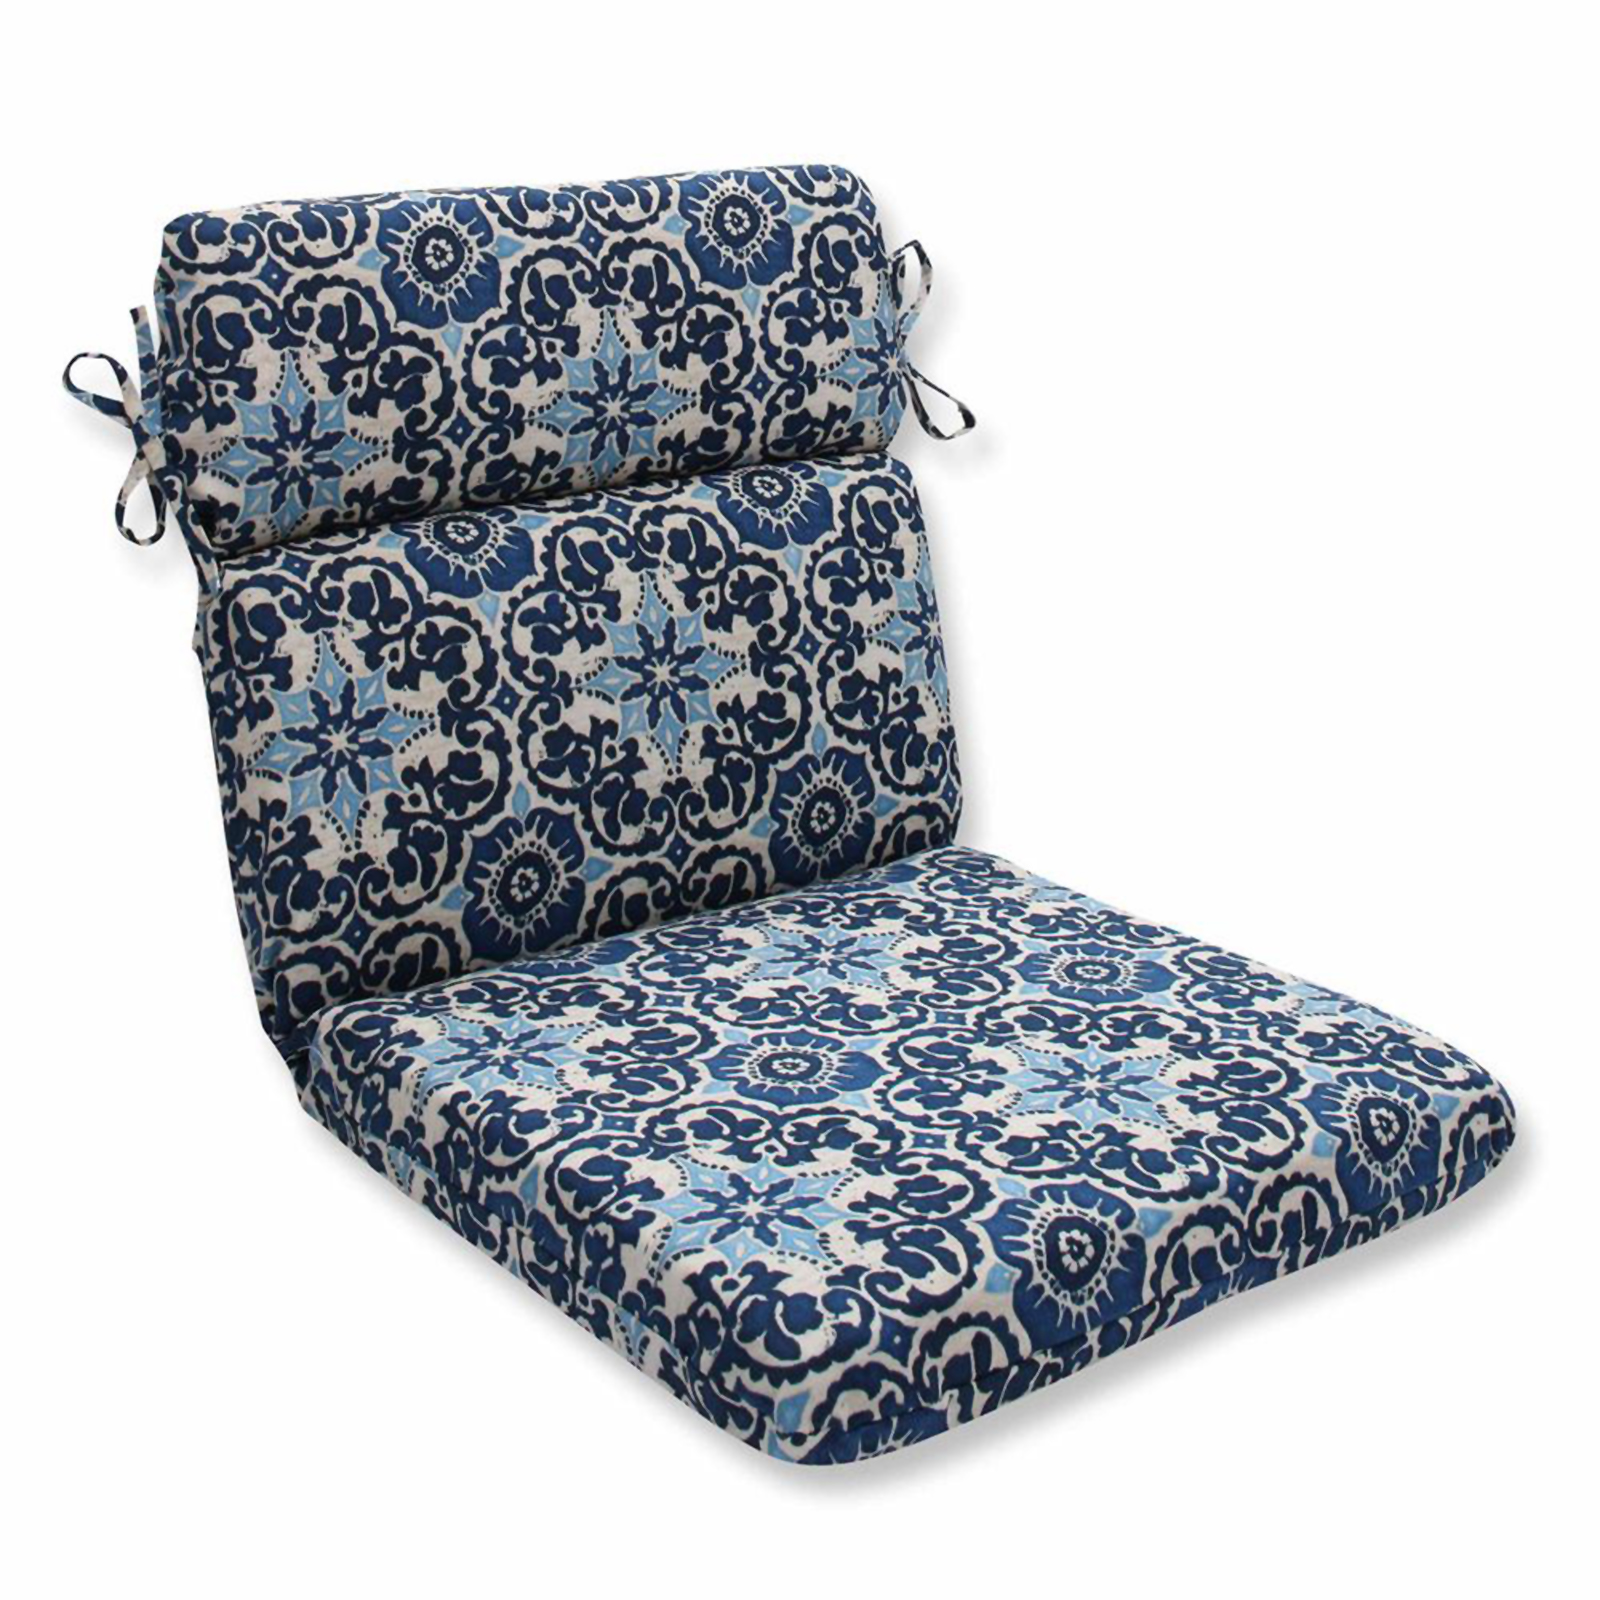 Pillow Perfect Rounded Corners Chair Cushion - Sears Marketplace